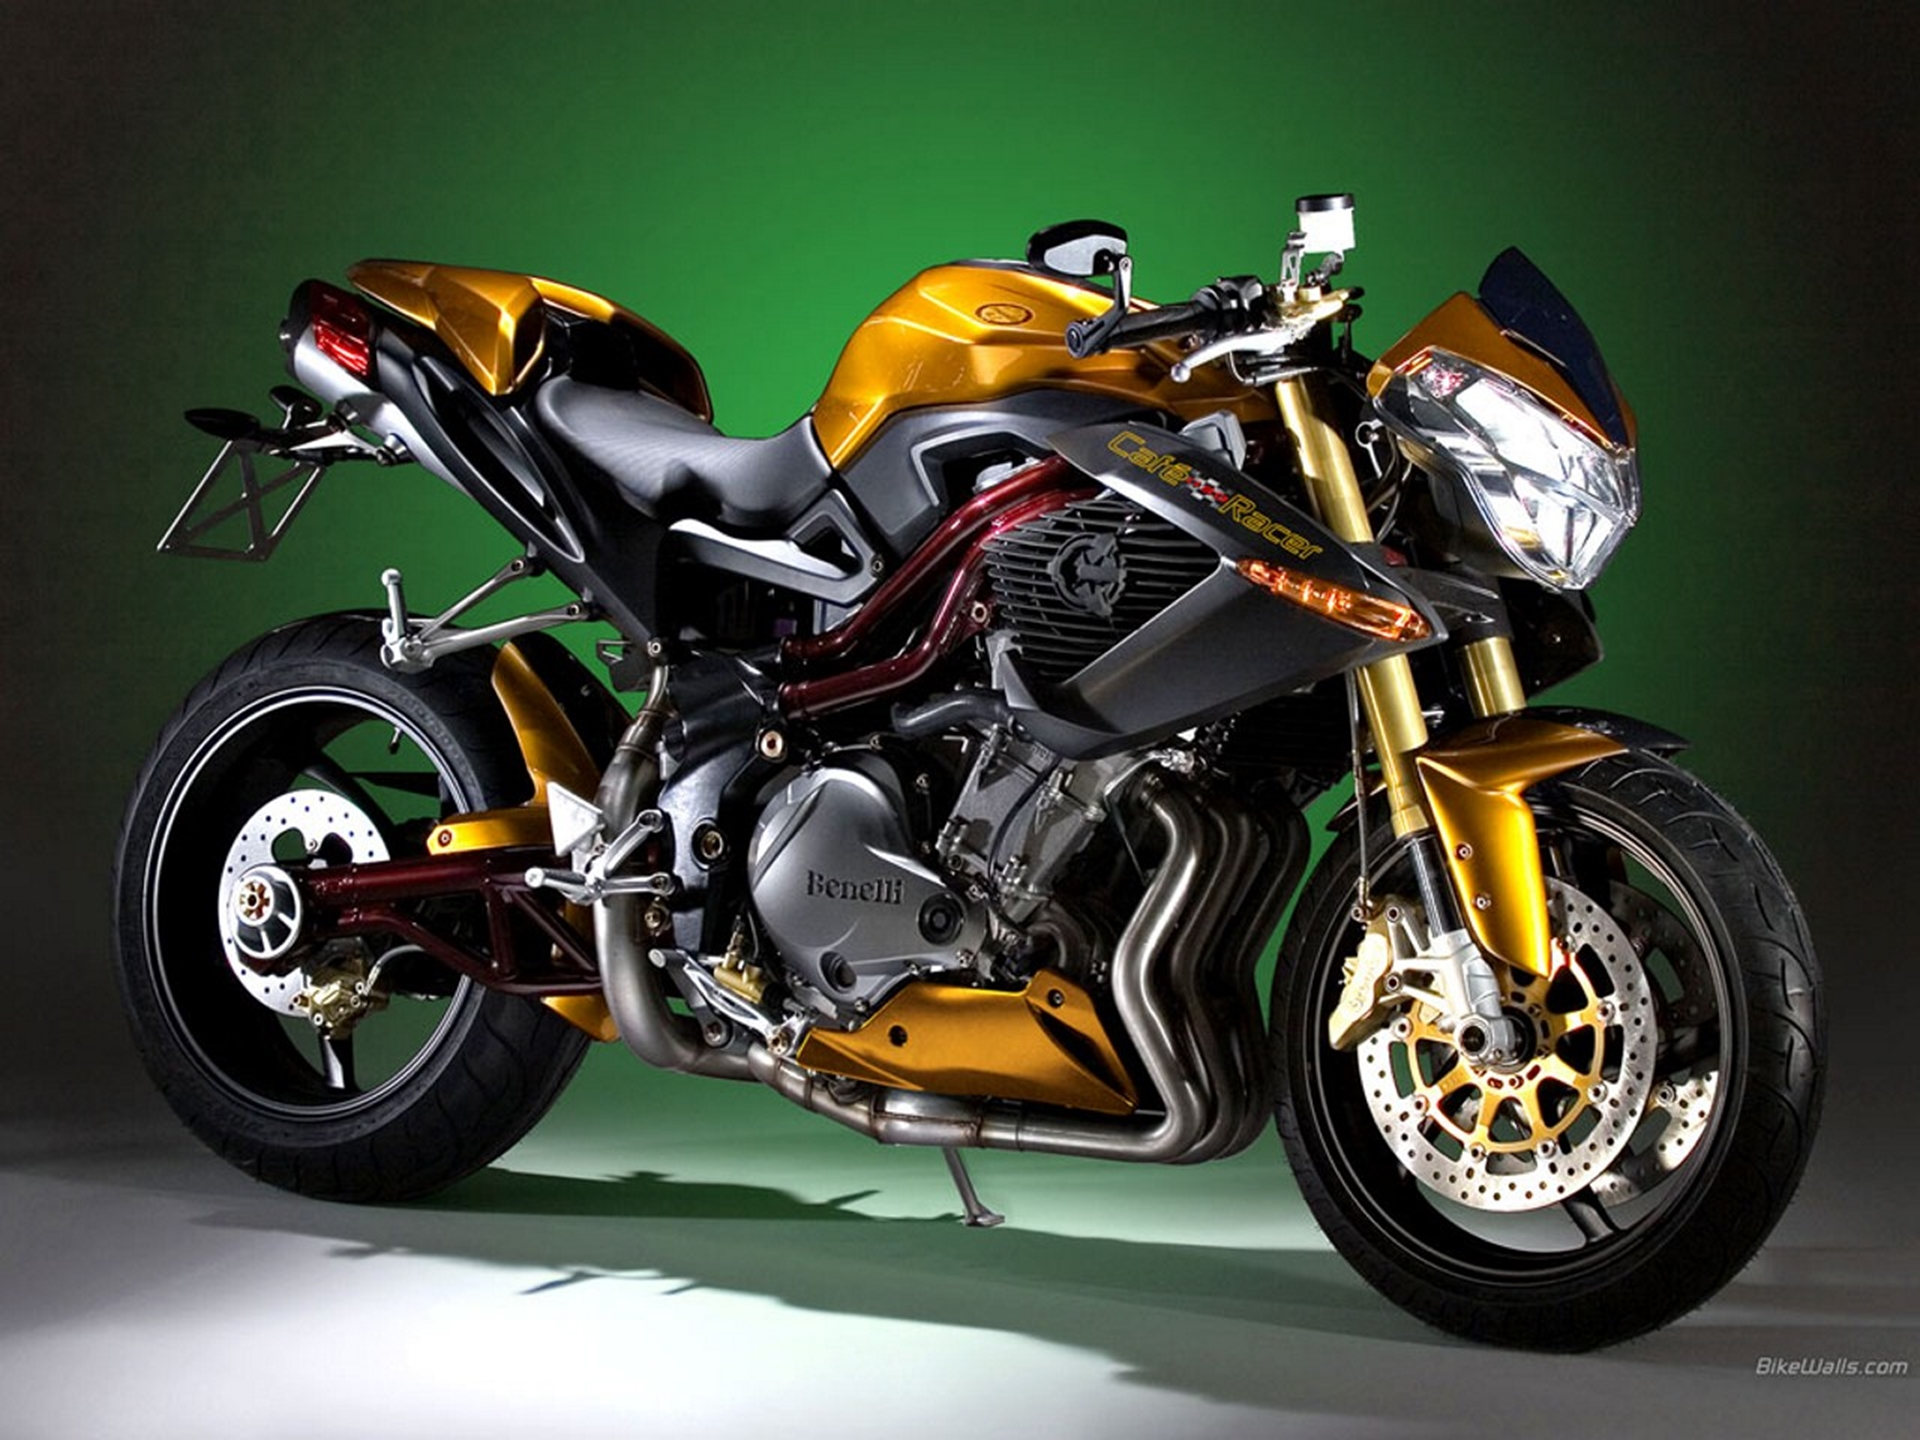 JOHANNESBURG BENELLI IS ANOTHER FAMOUS ITALIAN MOTORCYCLE BRAND RETURNING TO SA